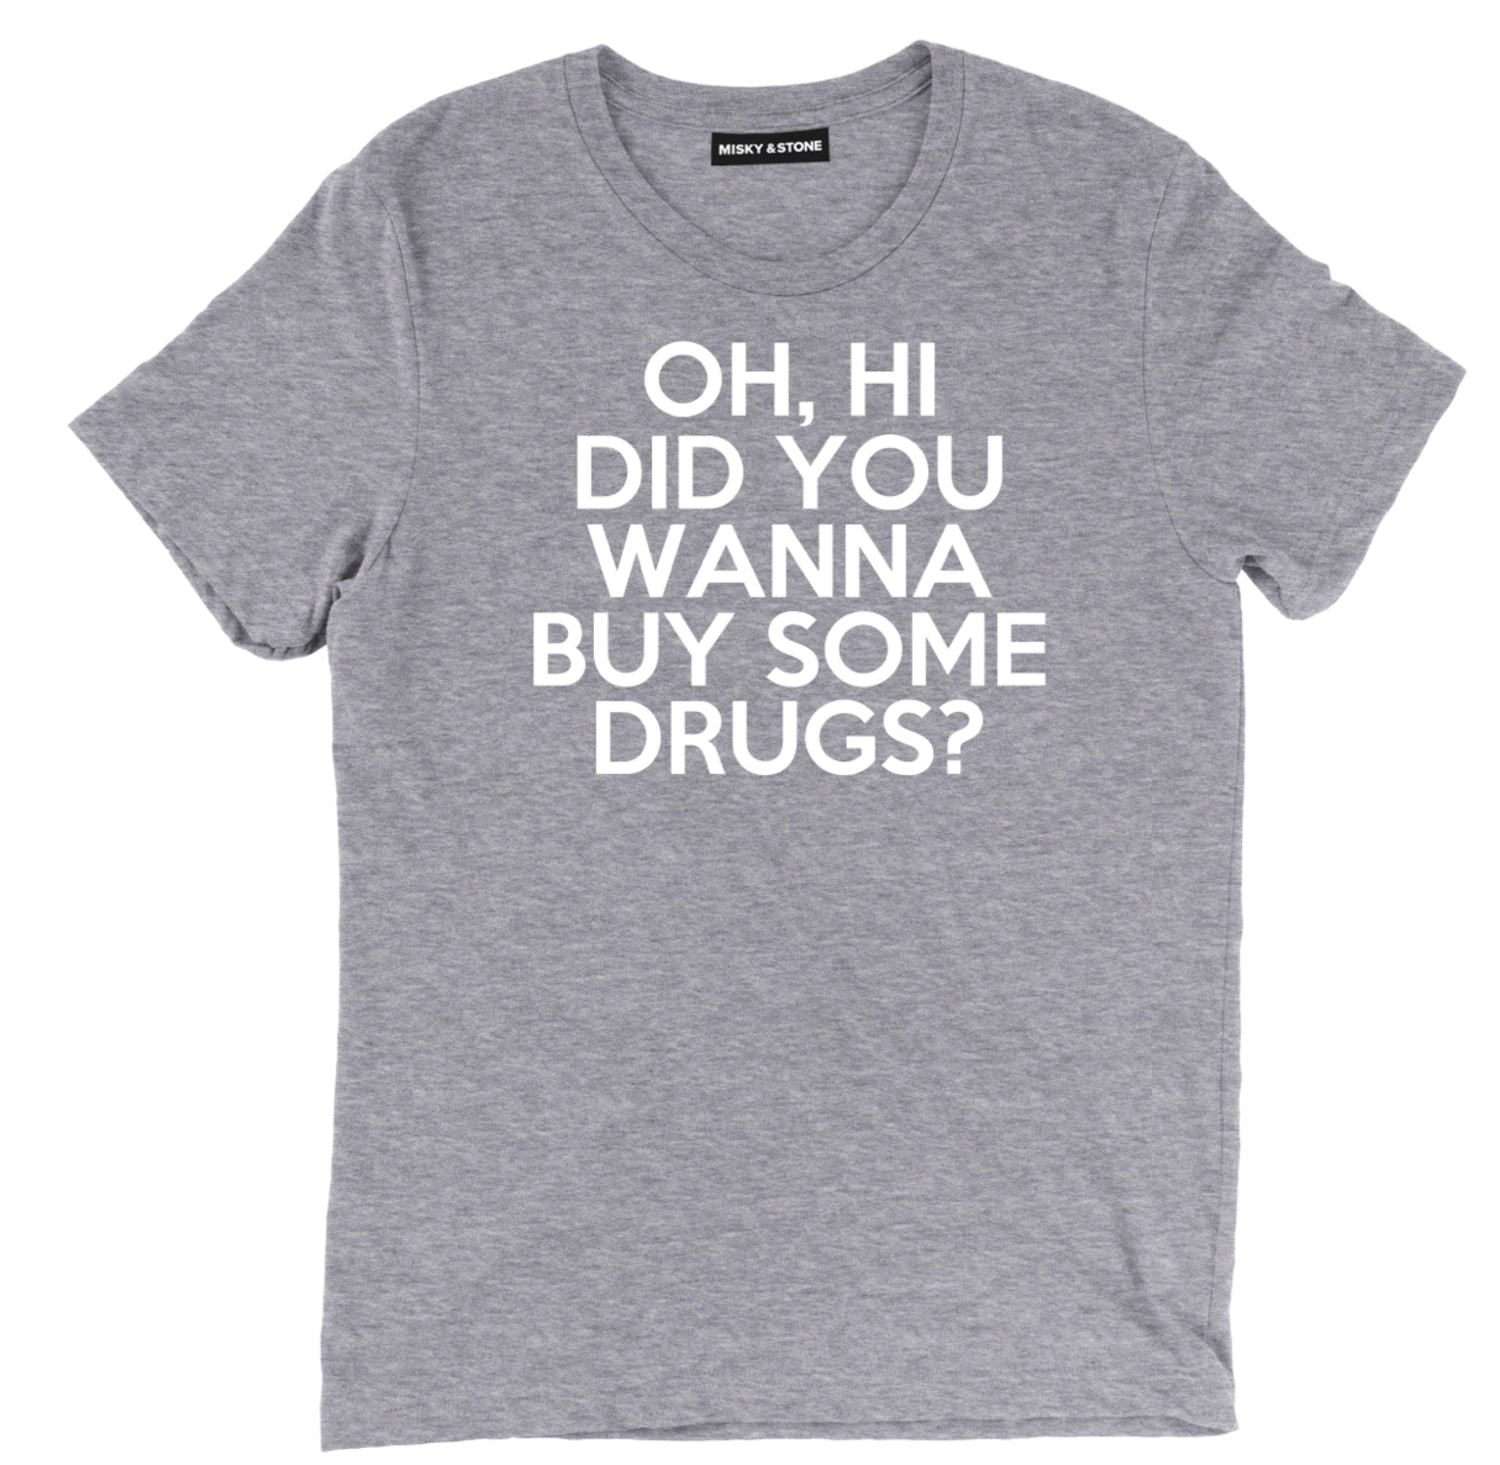 oh hi did you wanna buy some drugs t shirt, mean girls t shirt, funny mean girls movie quote t shirt, mean girls drugs tee